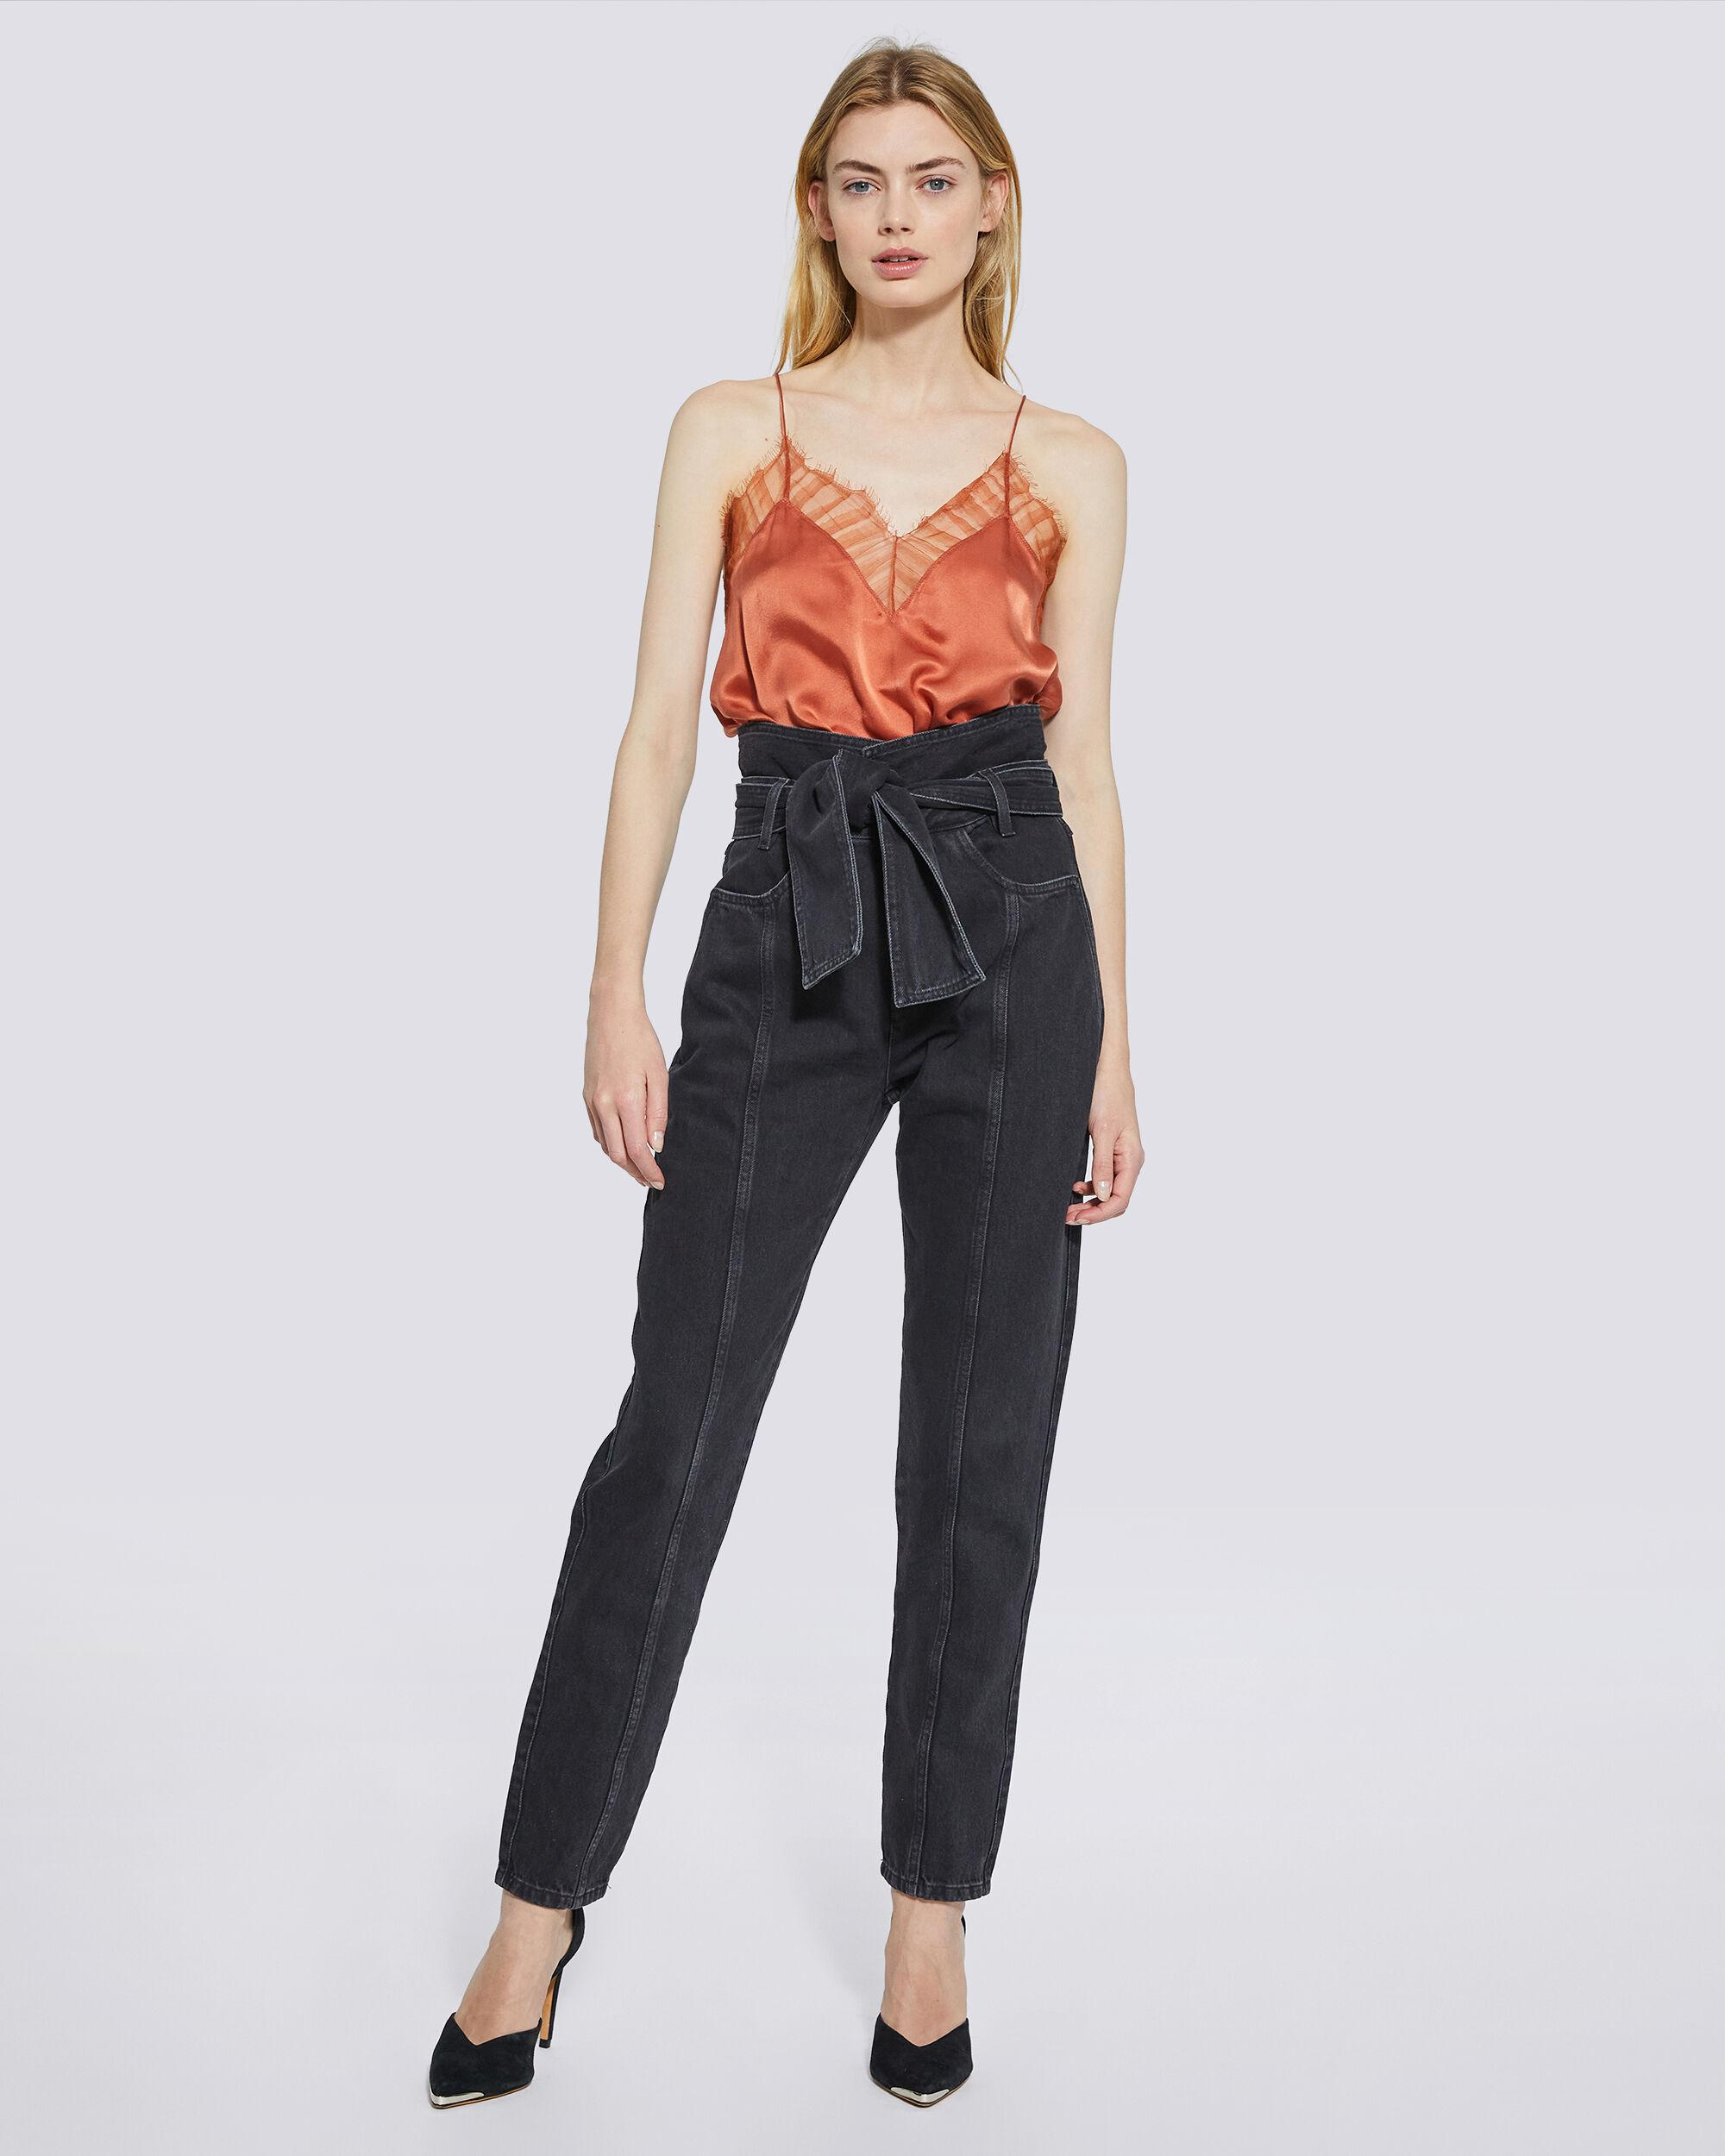 OUZILLY PAPERBAG HIGH WAIST JEANS